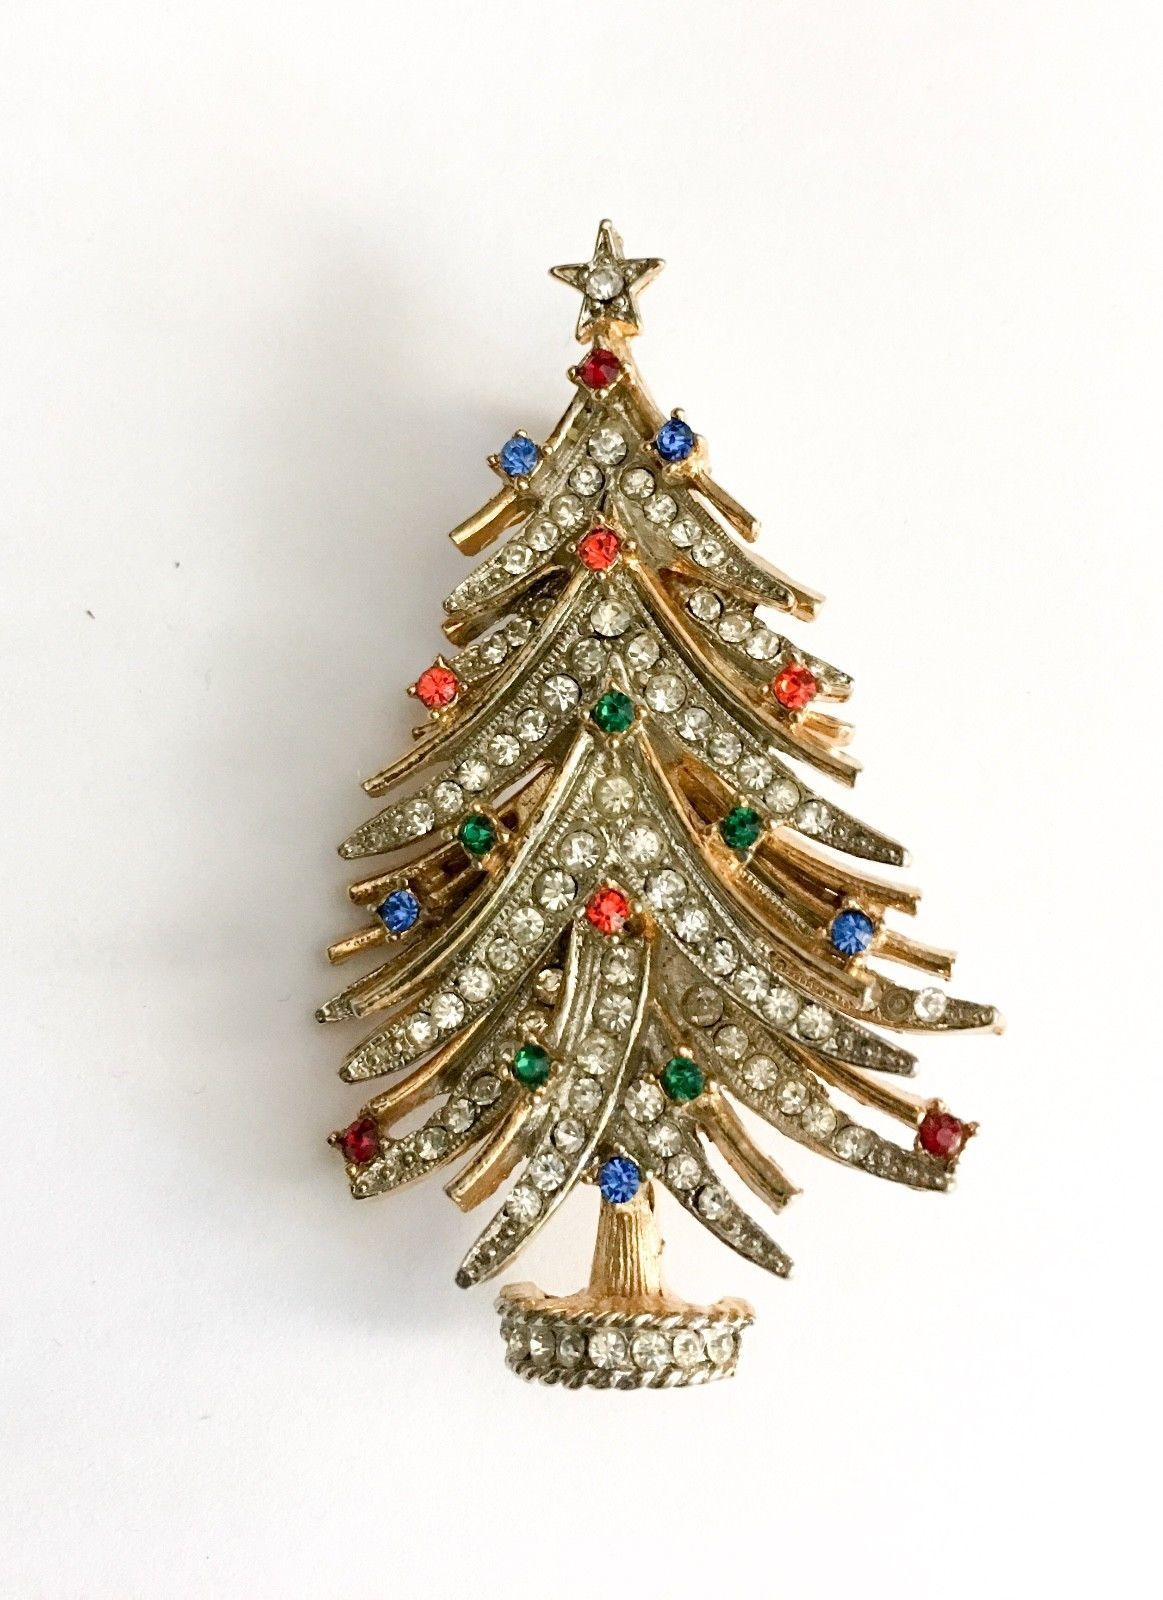 f9f4e9781da Vtg Signed ART Rhinestone Christmas Tree Brooch Pin Estate Exc Cond  Collectible FOR SALE • $27.77 • See Photos! Money Back Guarantee.